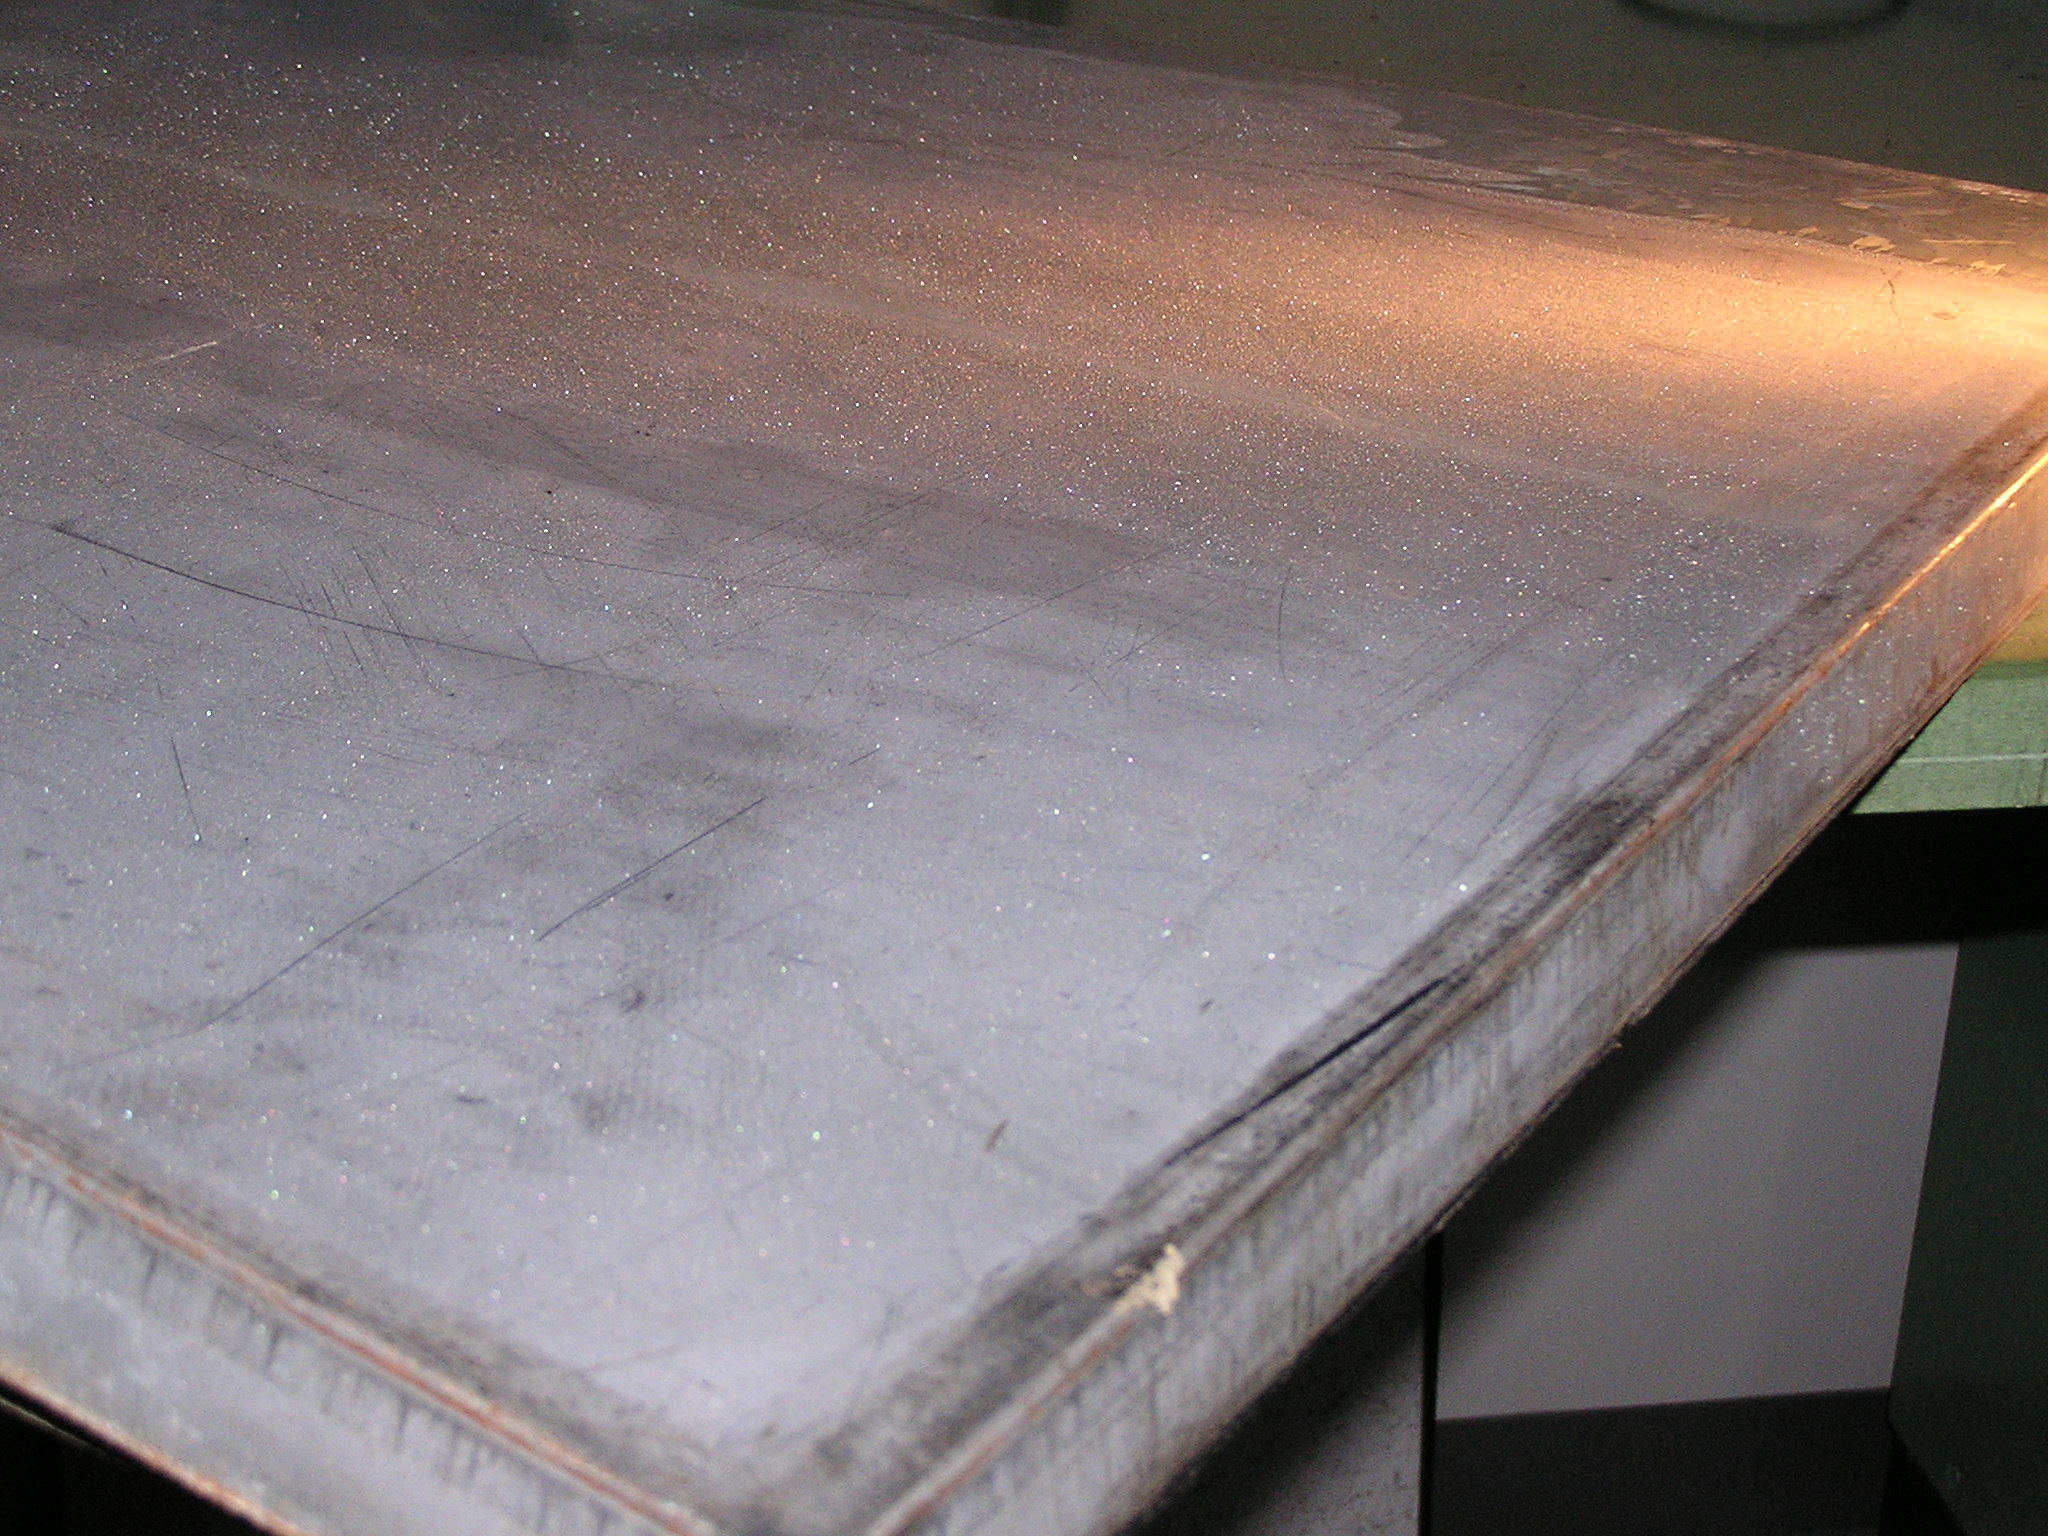 Photo gallery zinc whiskers on raised floor structures zinc whisker floor tile05g 689265 bytes dailygadgetfo Choice Image